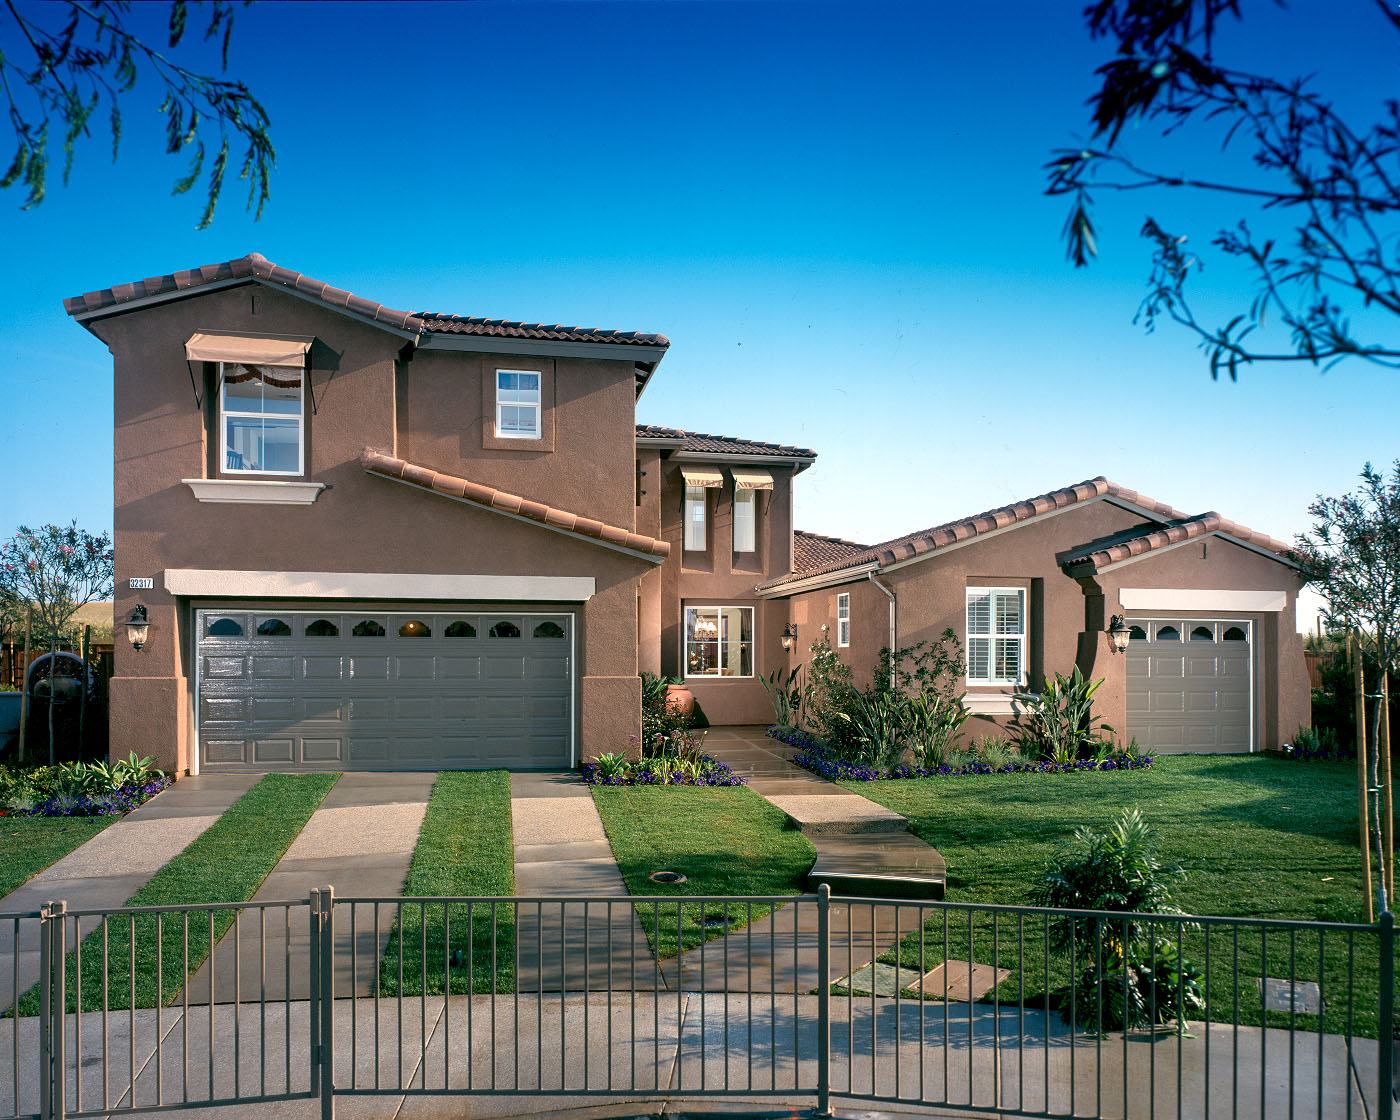 Single family production homes lro inc for Family home builders